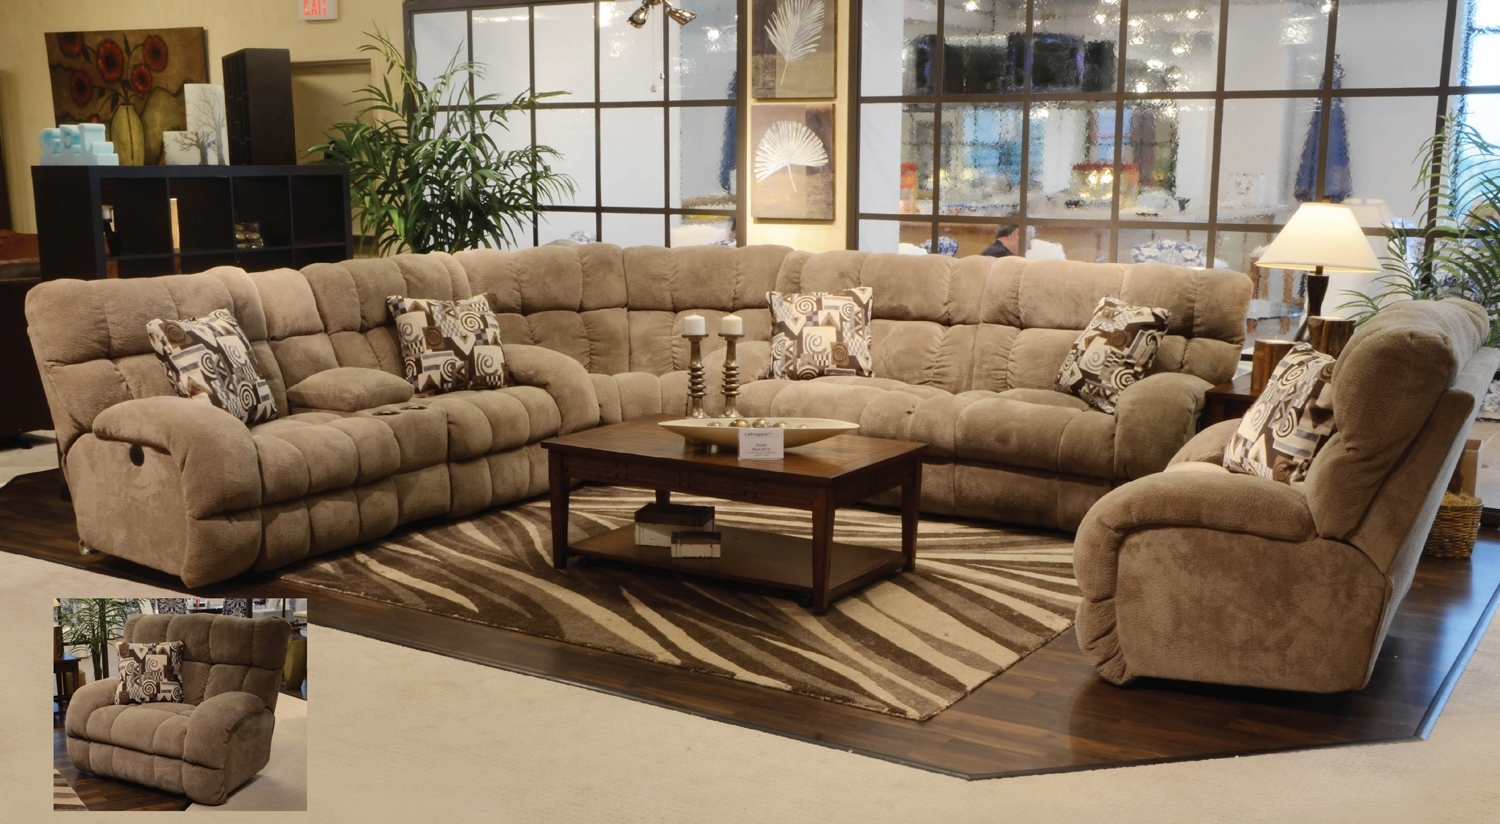 12 photo of extra large sectional sofas With x large sectional sofa